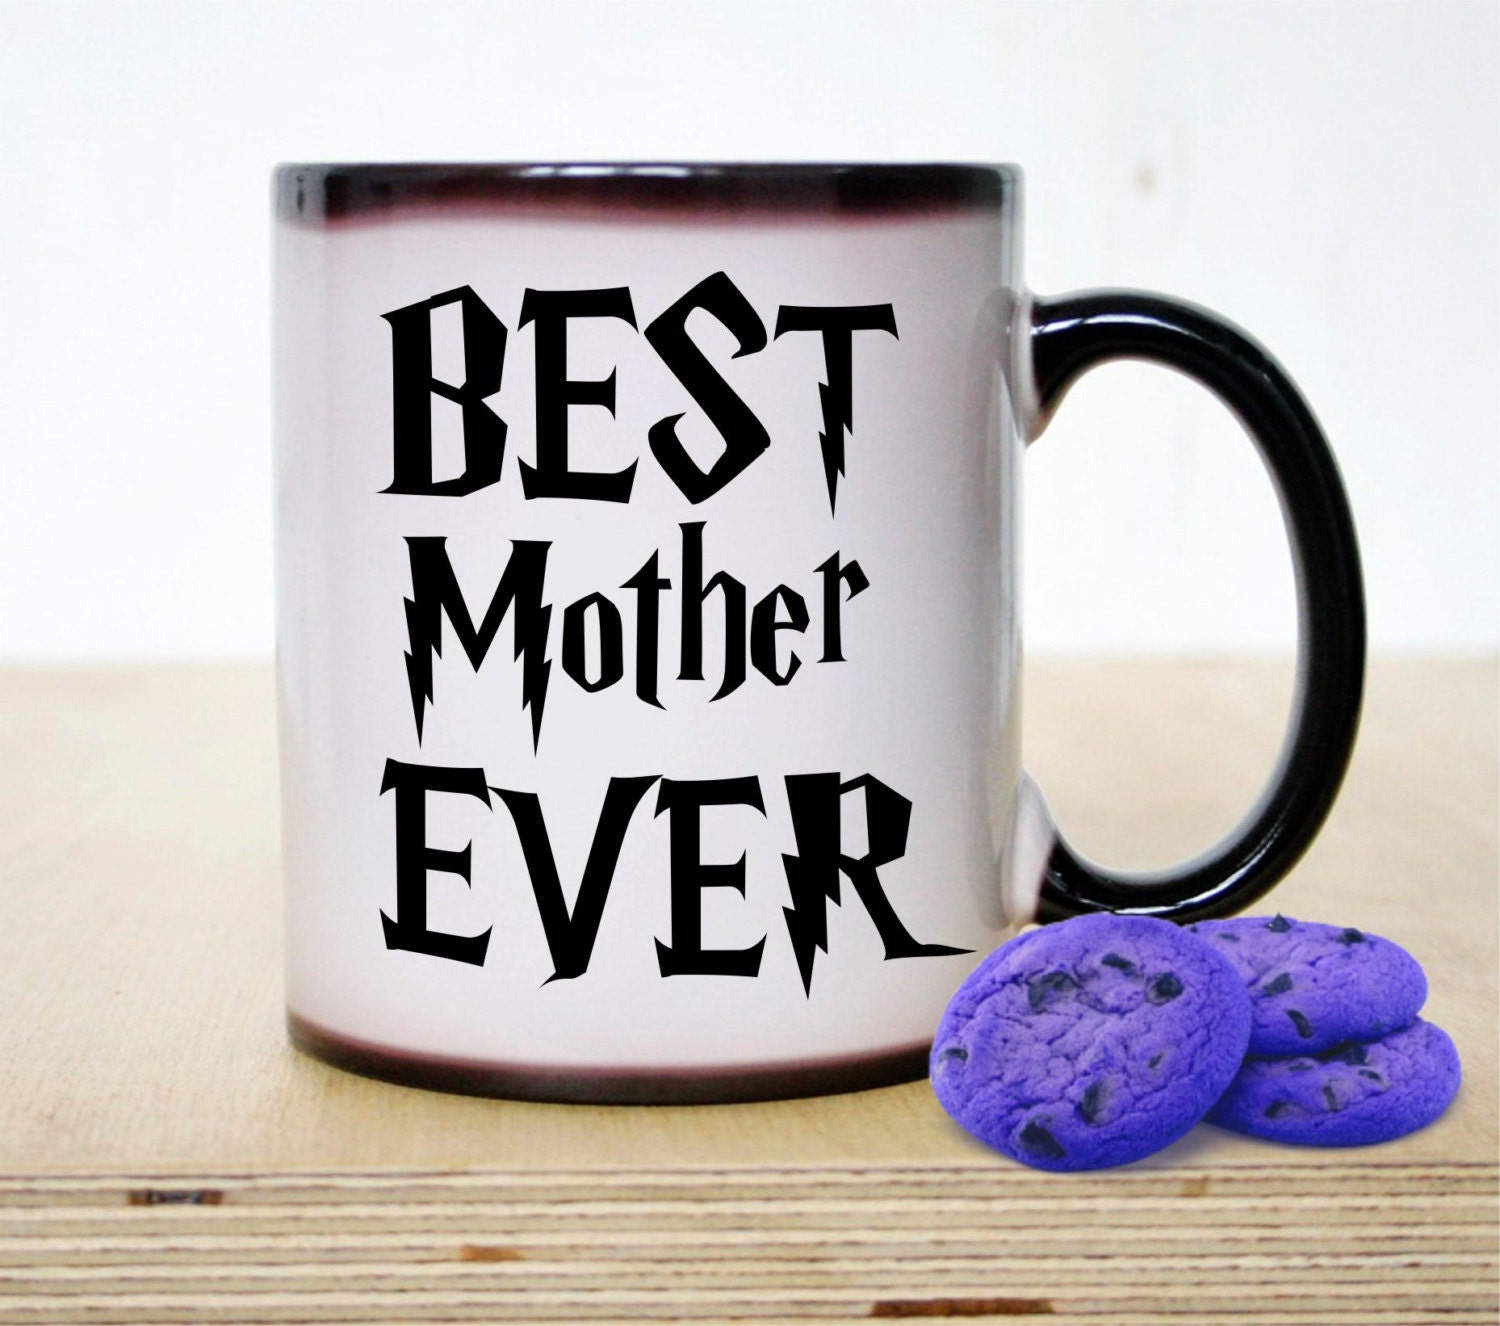 Best Mother Ever Mug Color Changing Mug Mug Coffee Mug